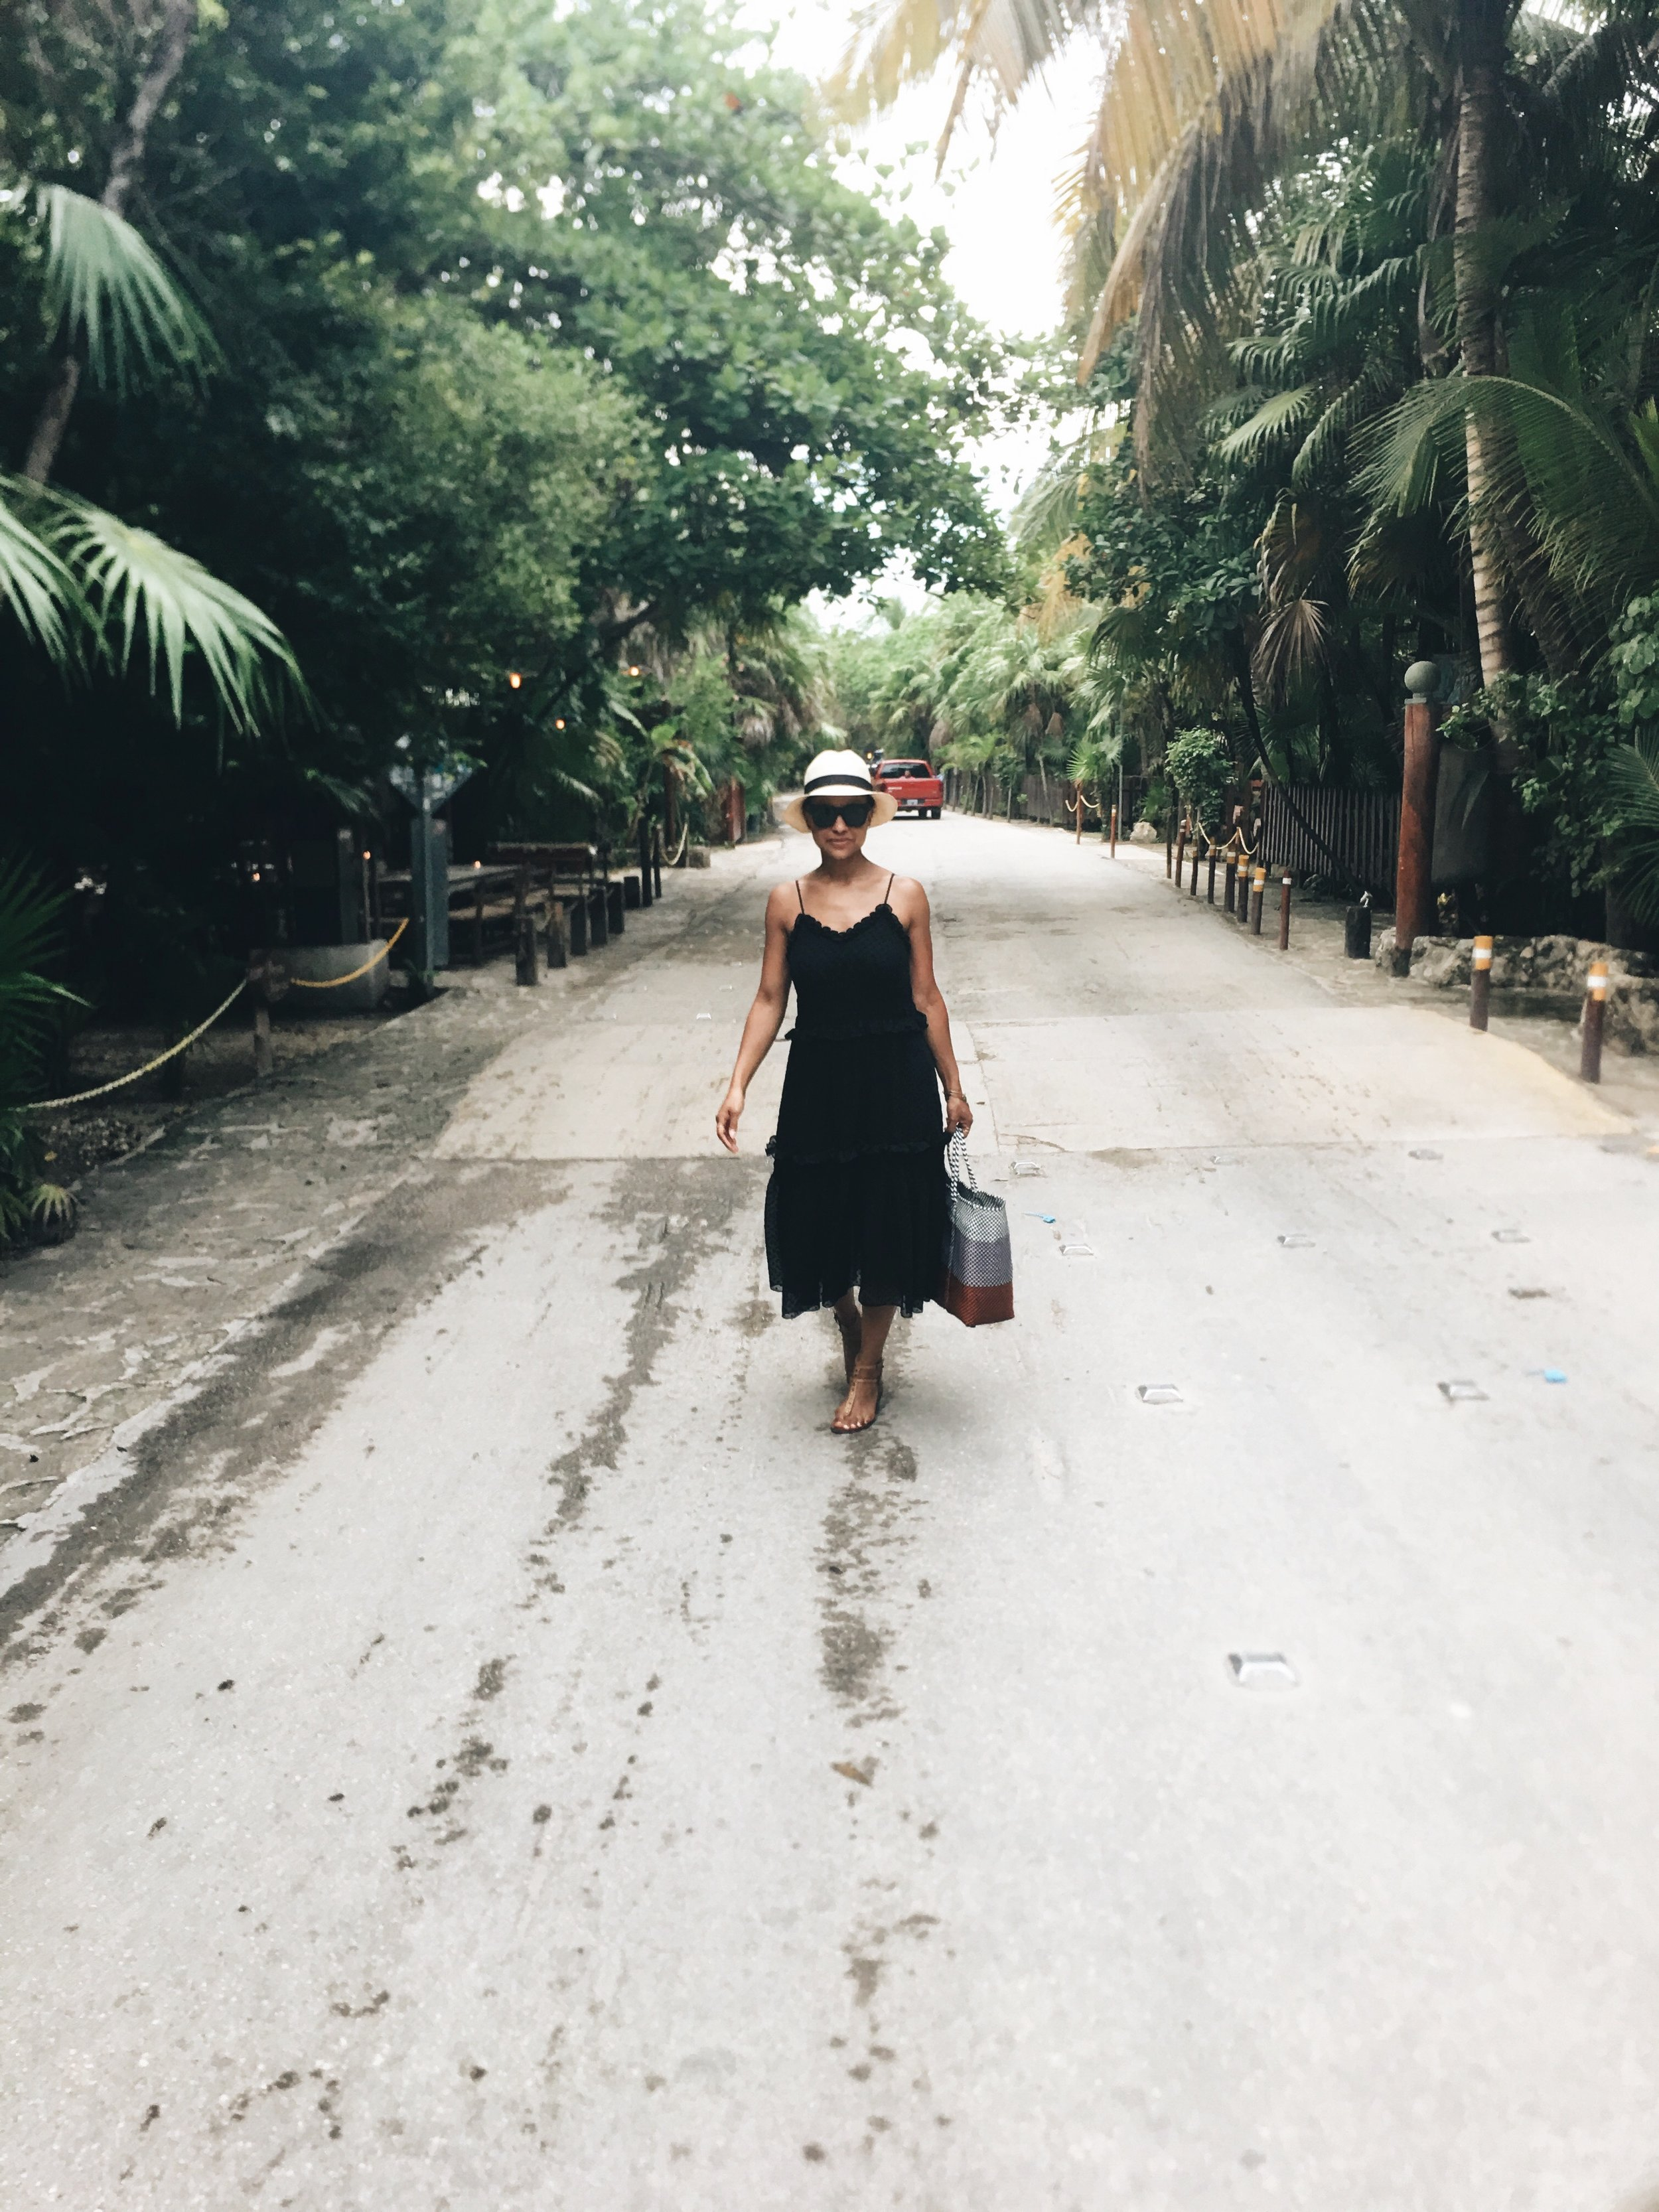 Even the streets of Tulum are picturesque.